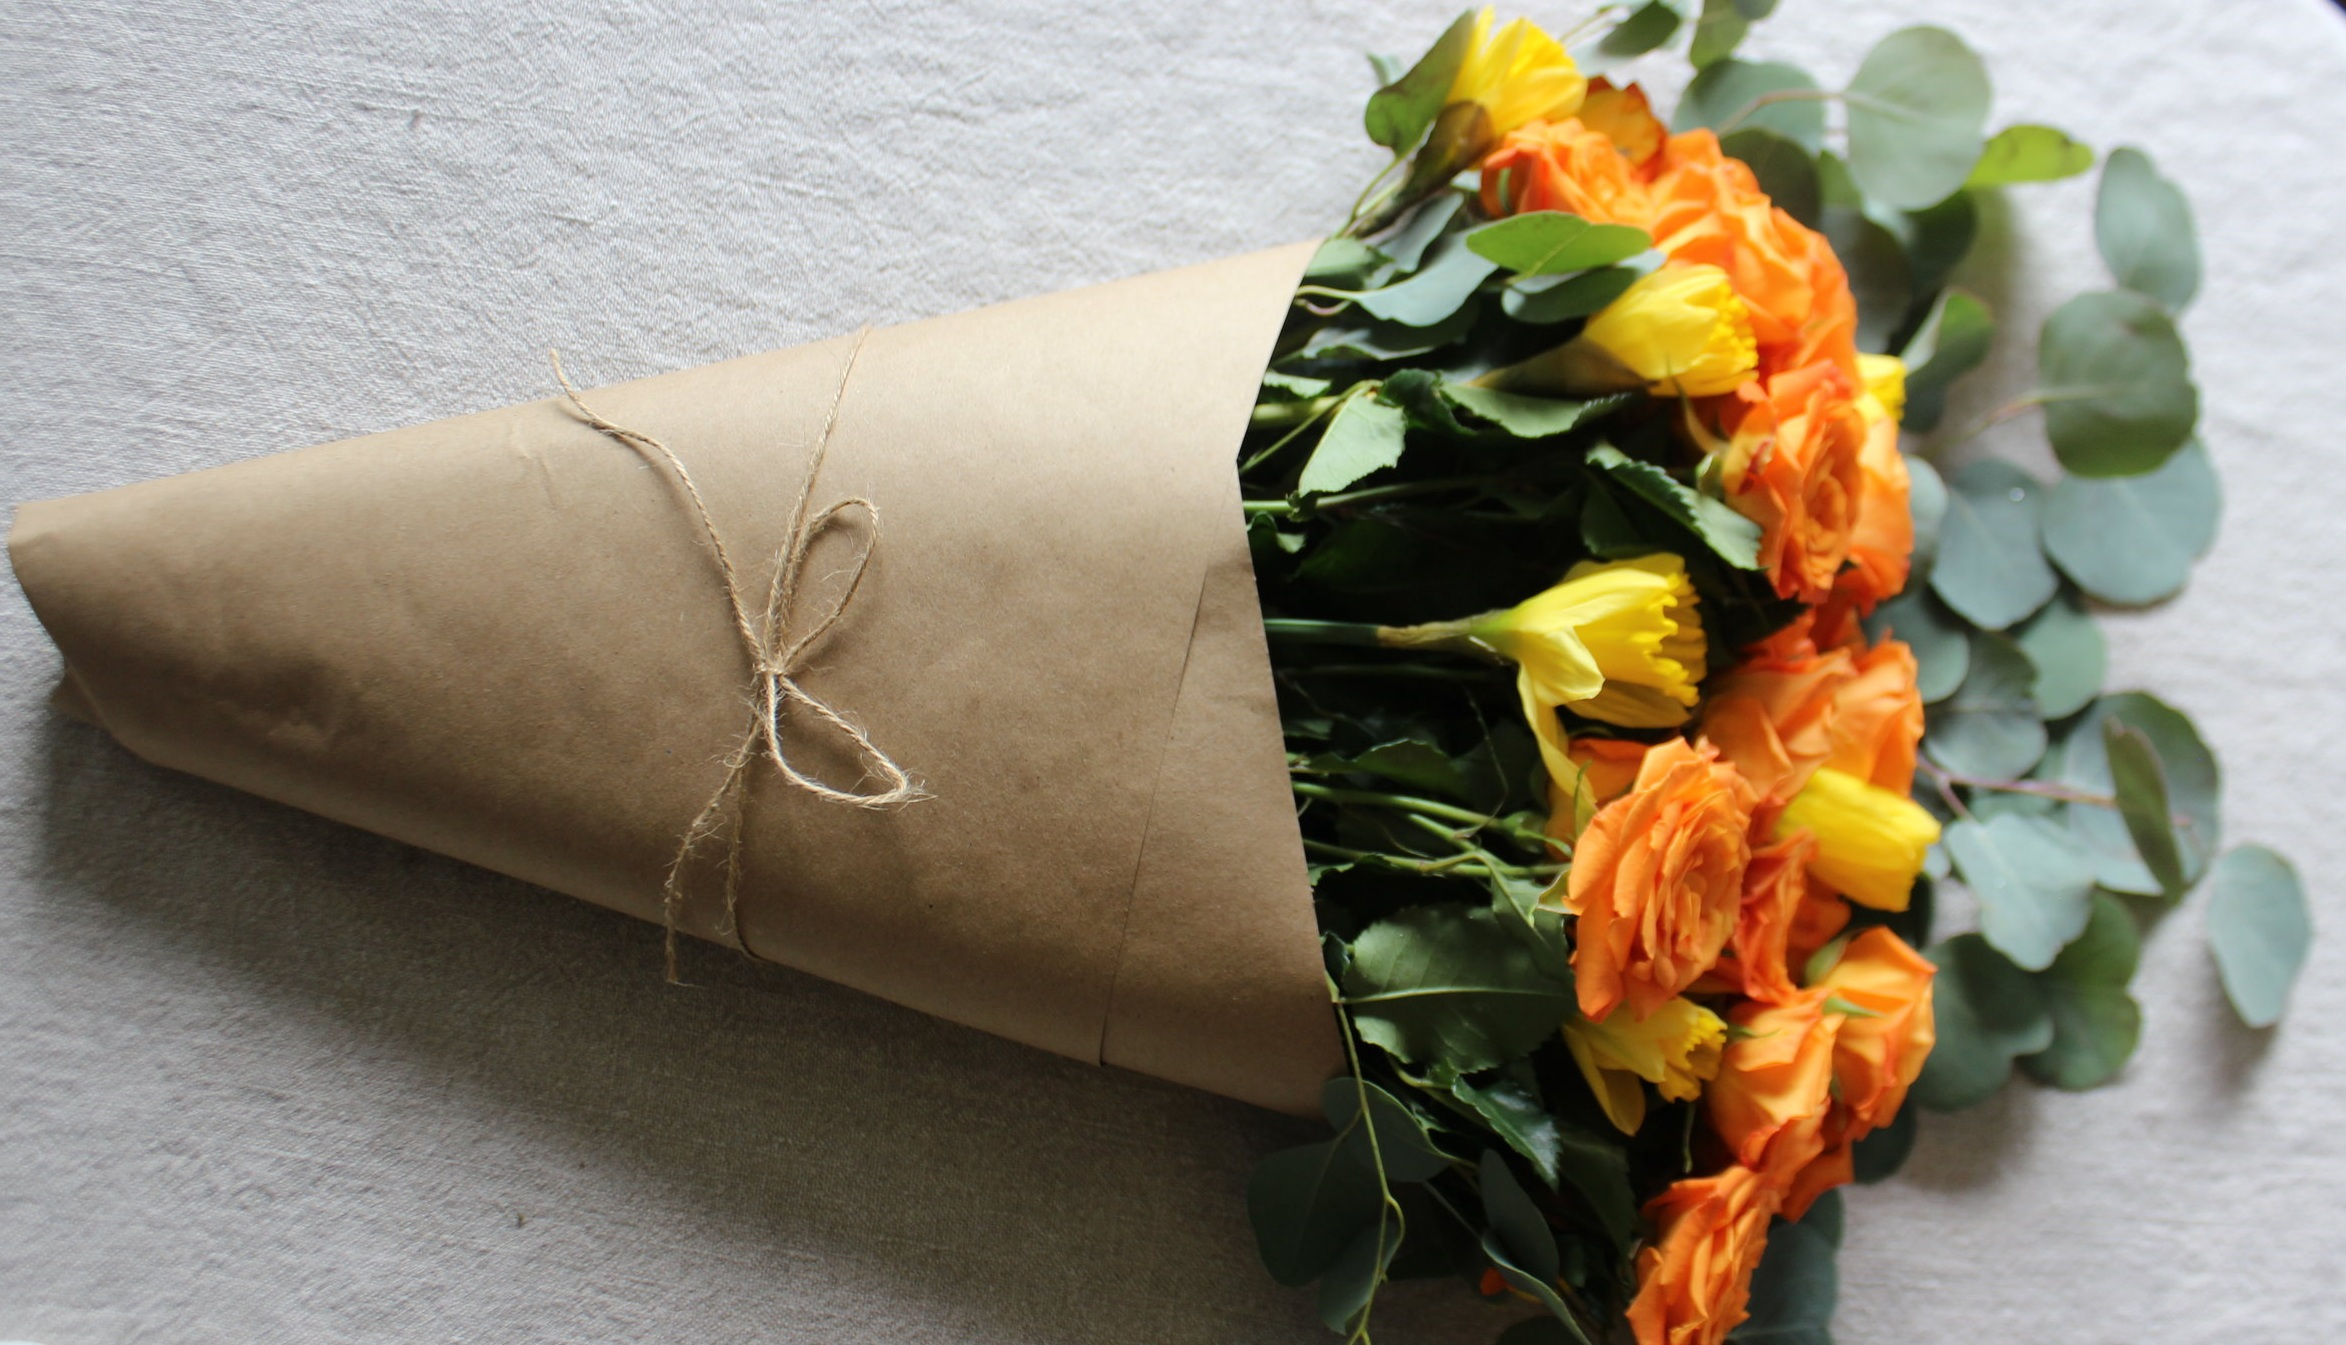 If you're gifting, lose the plastic. Nothing screams grocery store flowers like logo-printed plastic. Instead, wrap with brown kraft paper and tie with twine.